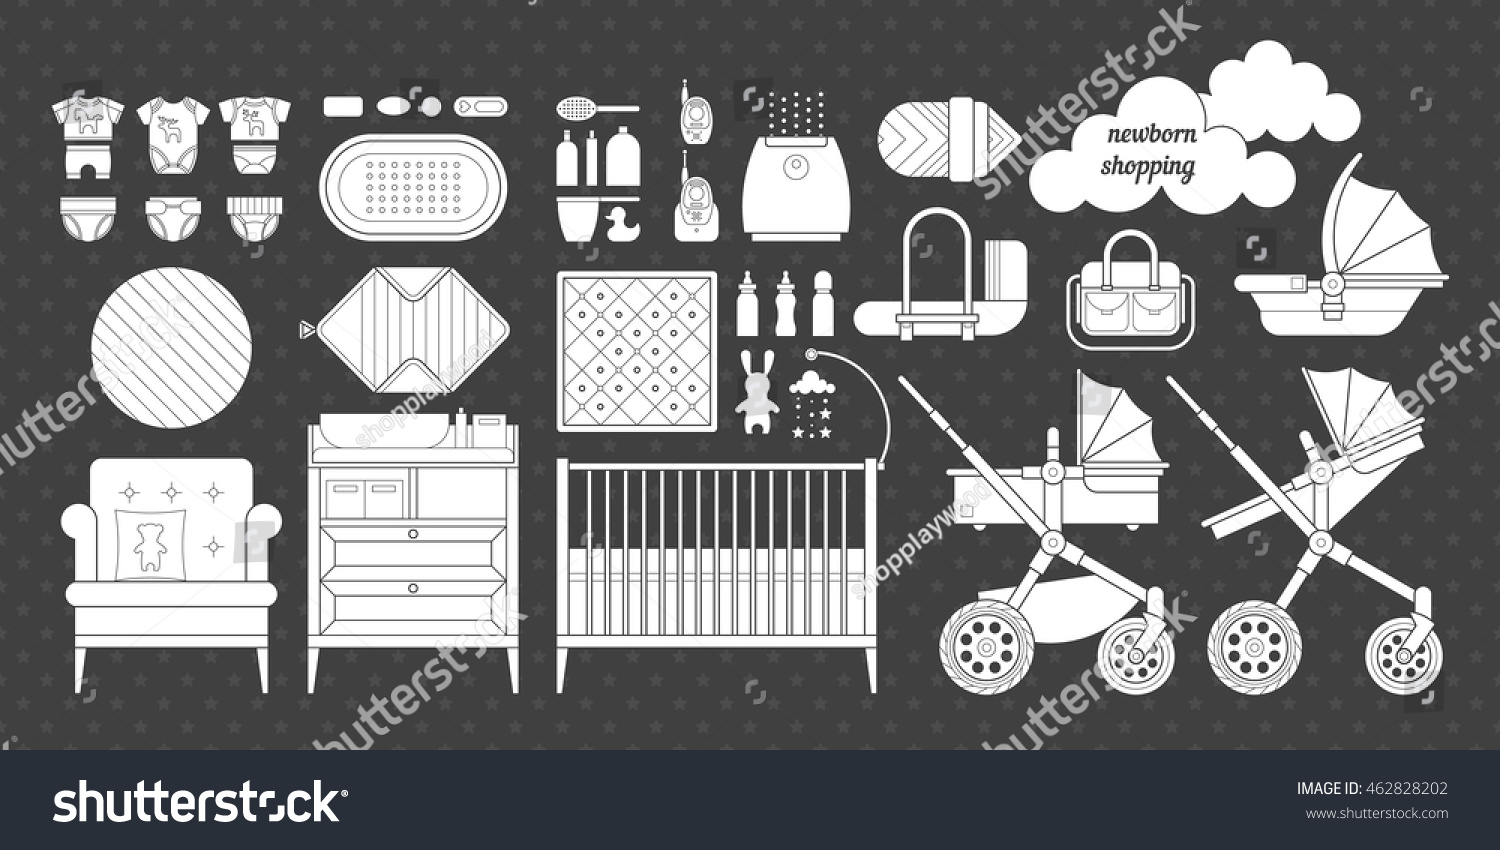 Icons Newborn Products Cribs Baby Stroller Stock Vector Hd Royalty